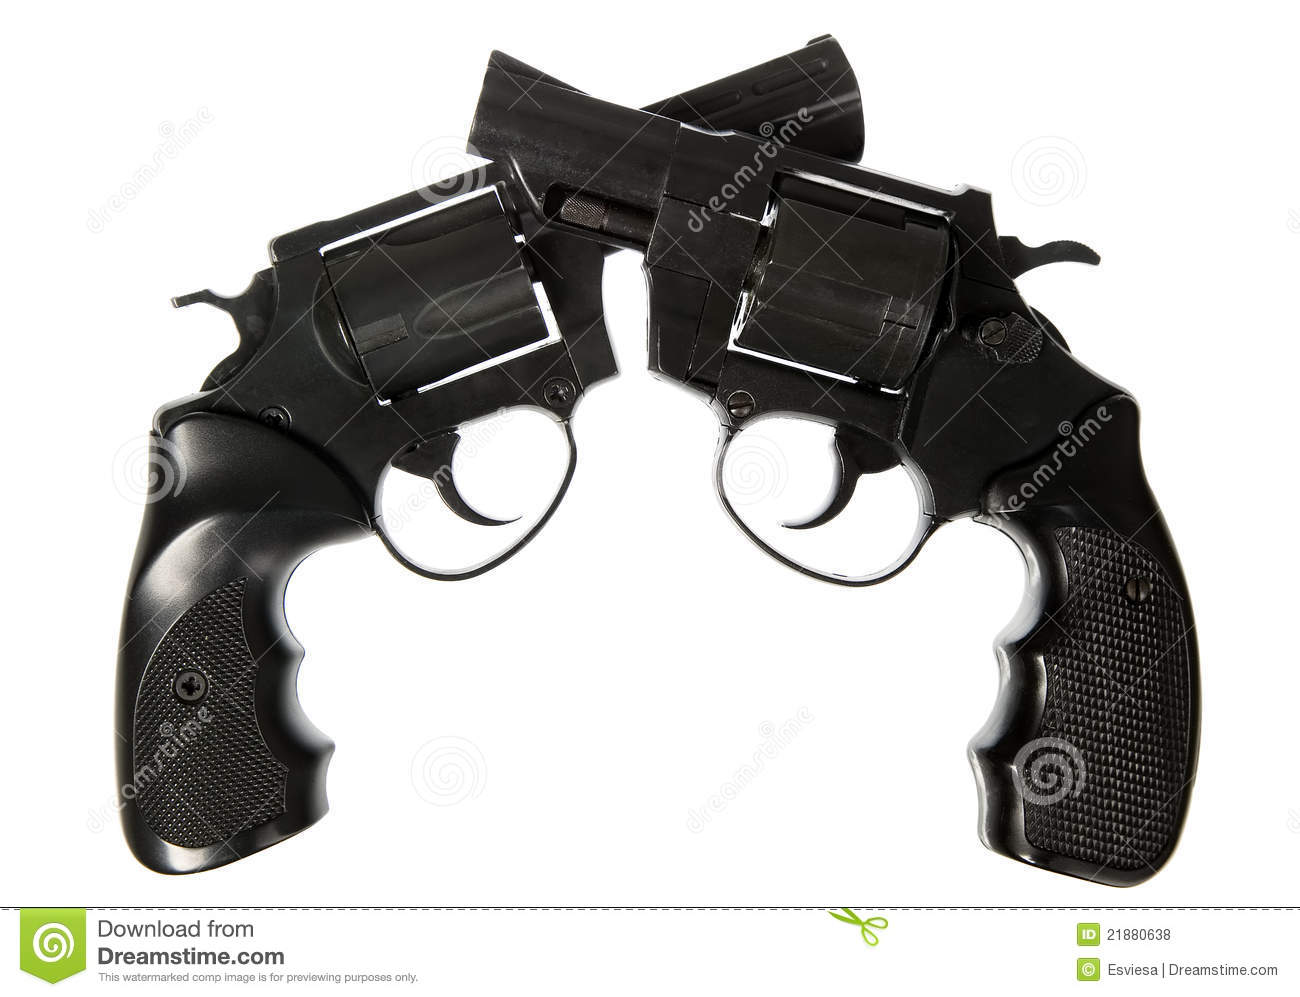 gun white background - photo #34